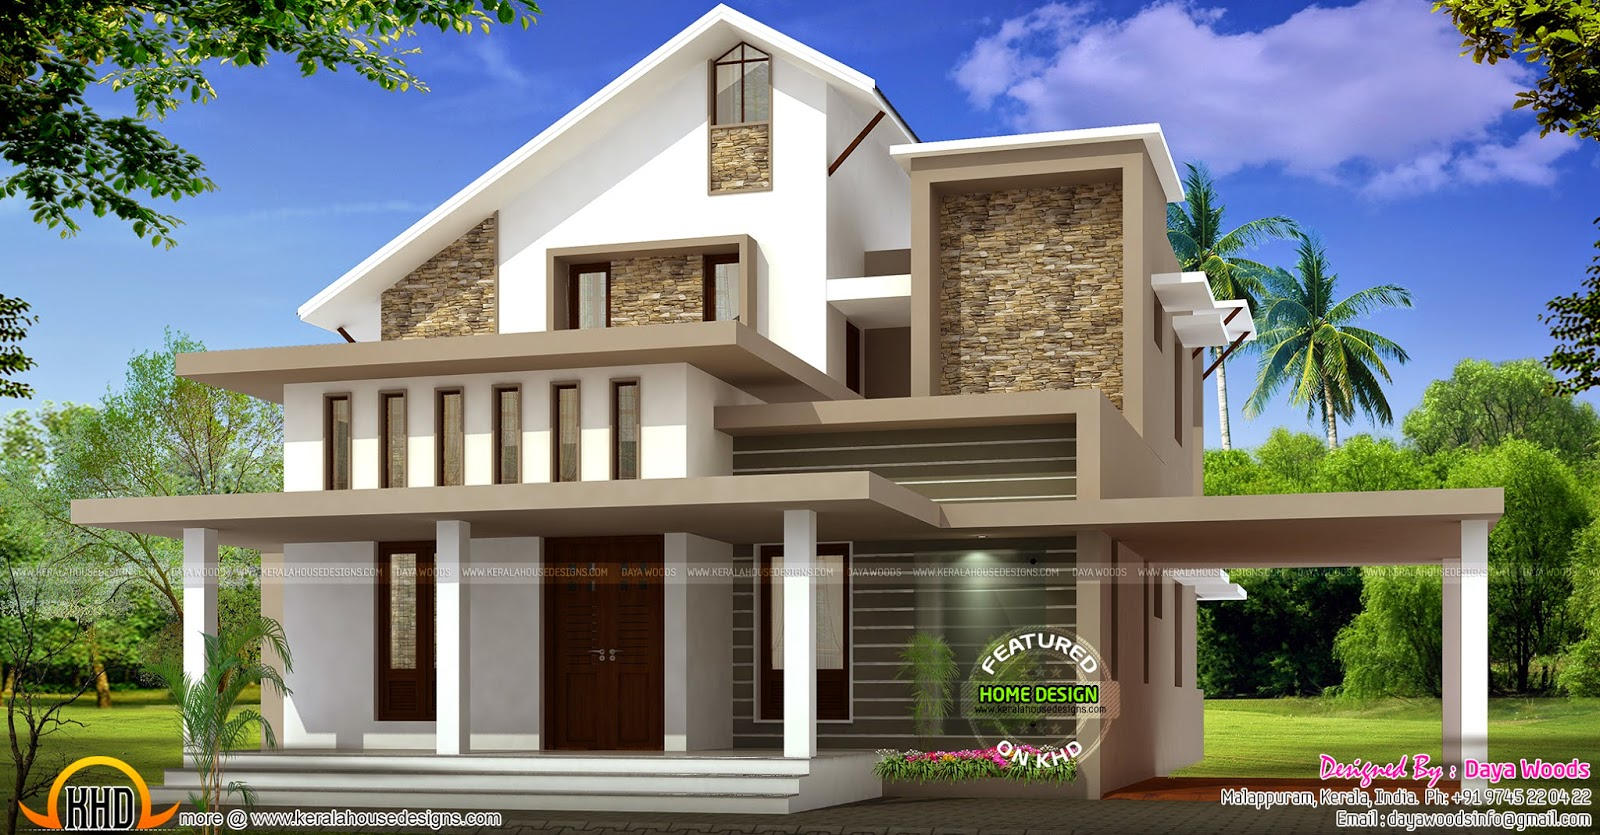 Low budget semi contemporary home kerala home design and for Modern kerala style house plans with photos